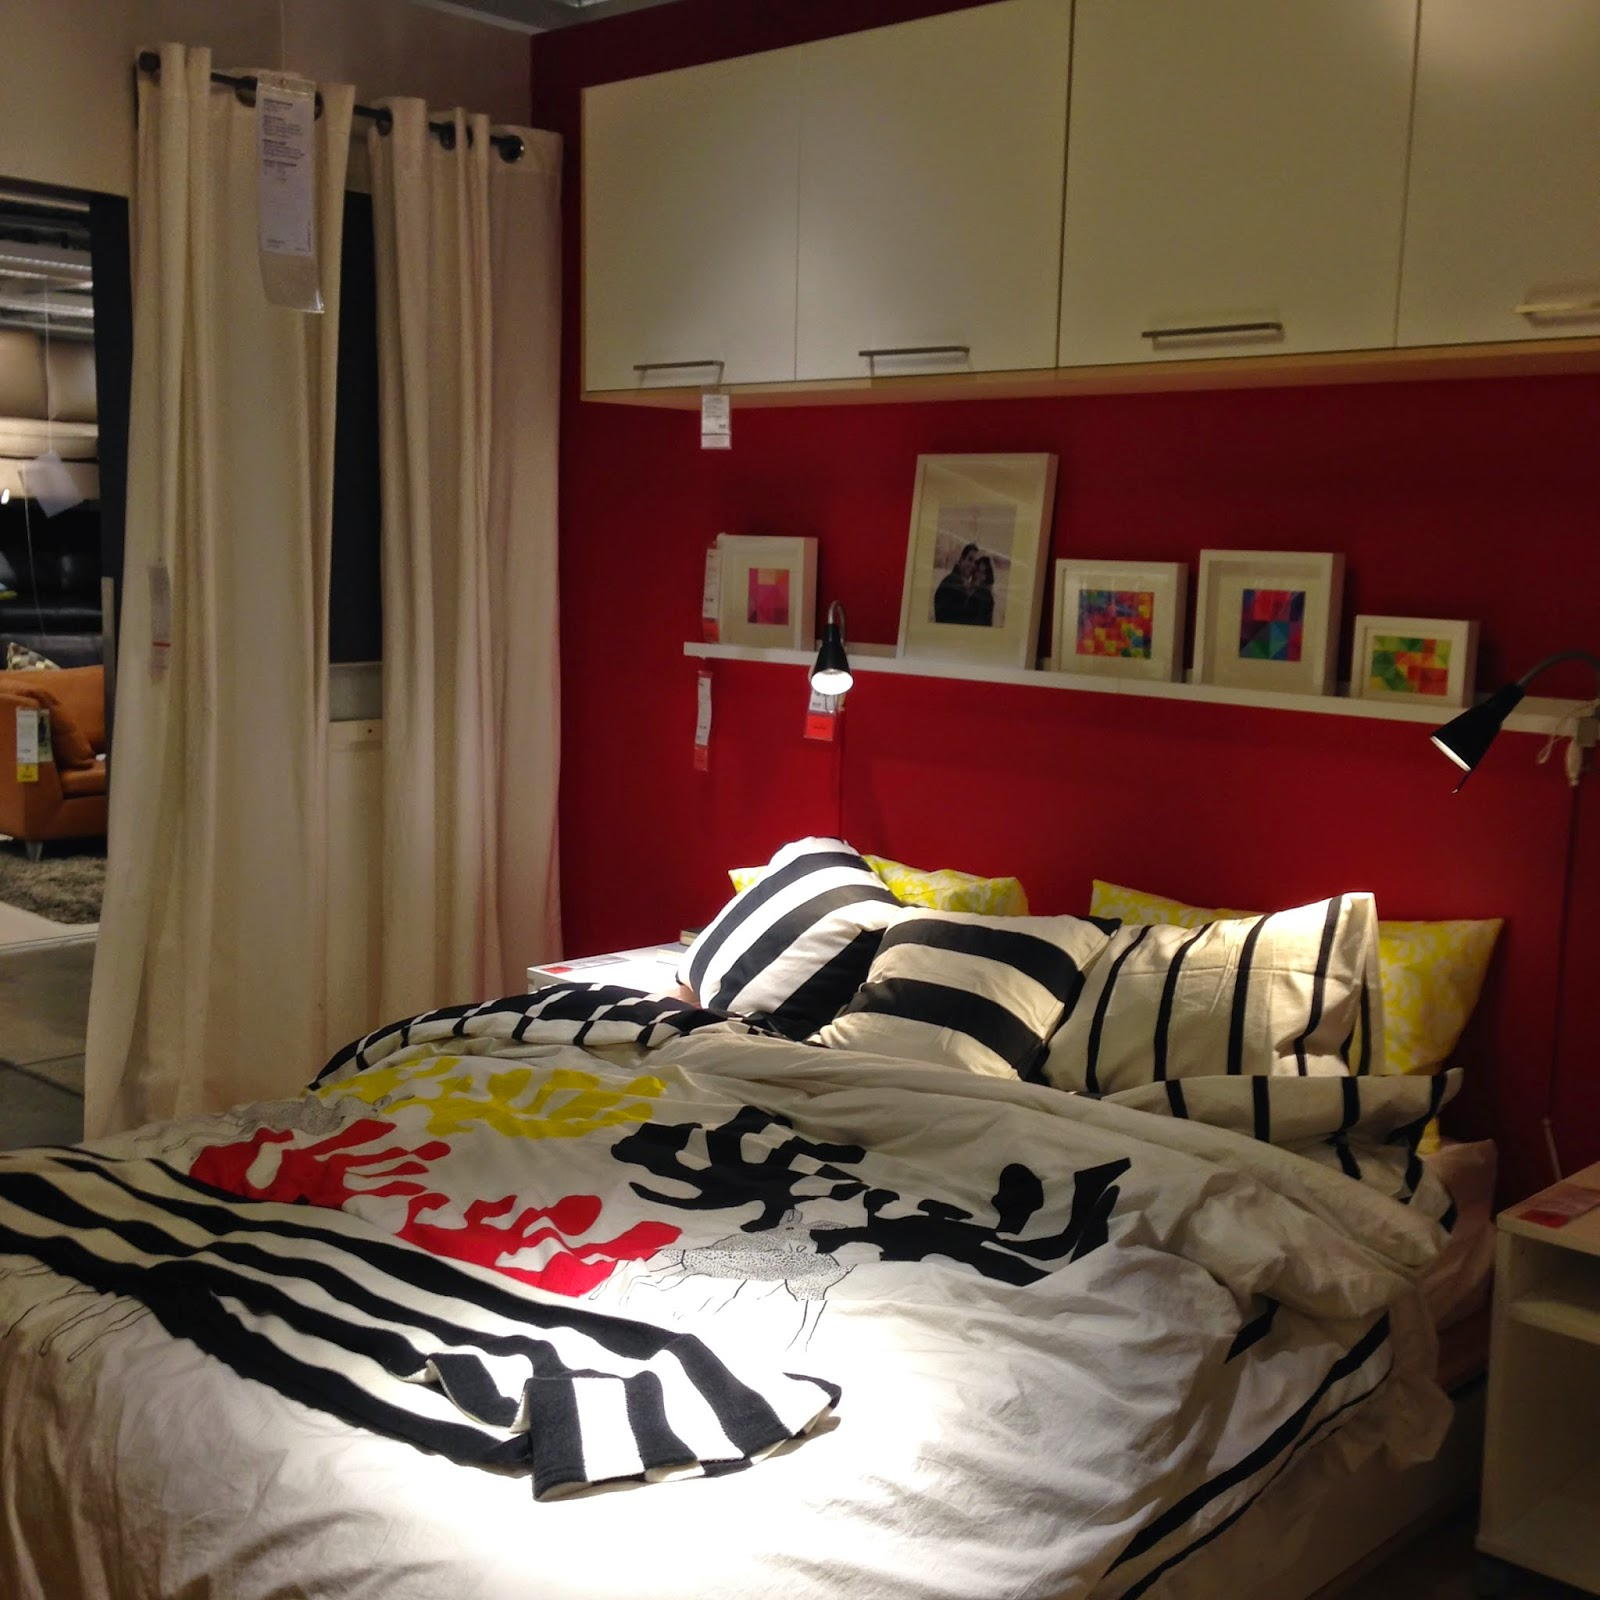 3 Things You Can Learn From An Ikea Showroom